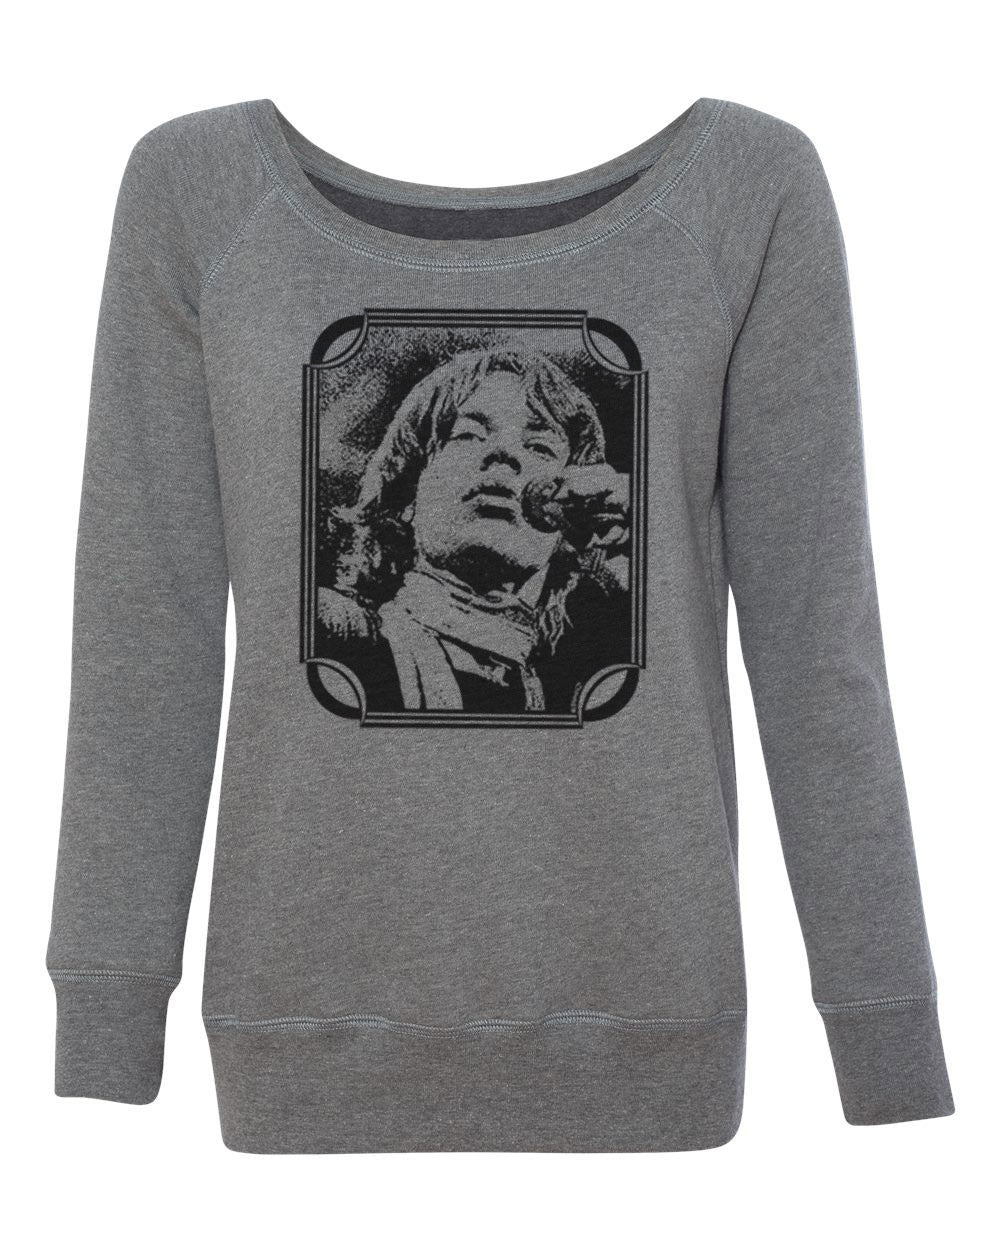 Young Mick | Women's Off Shoulder Sweatshirt